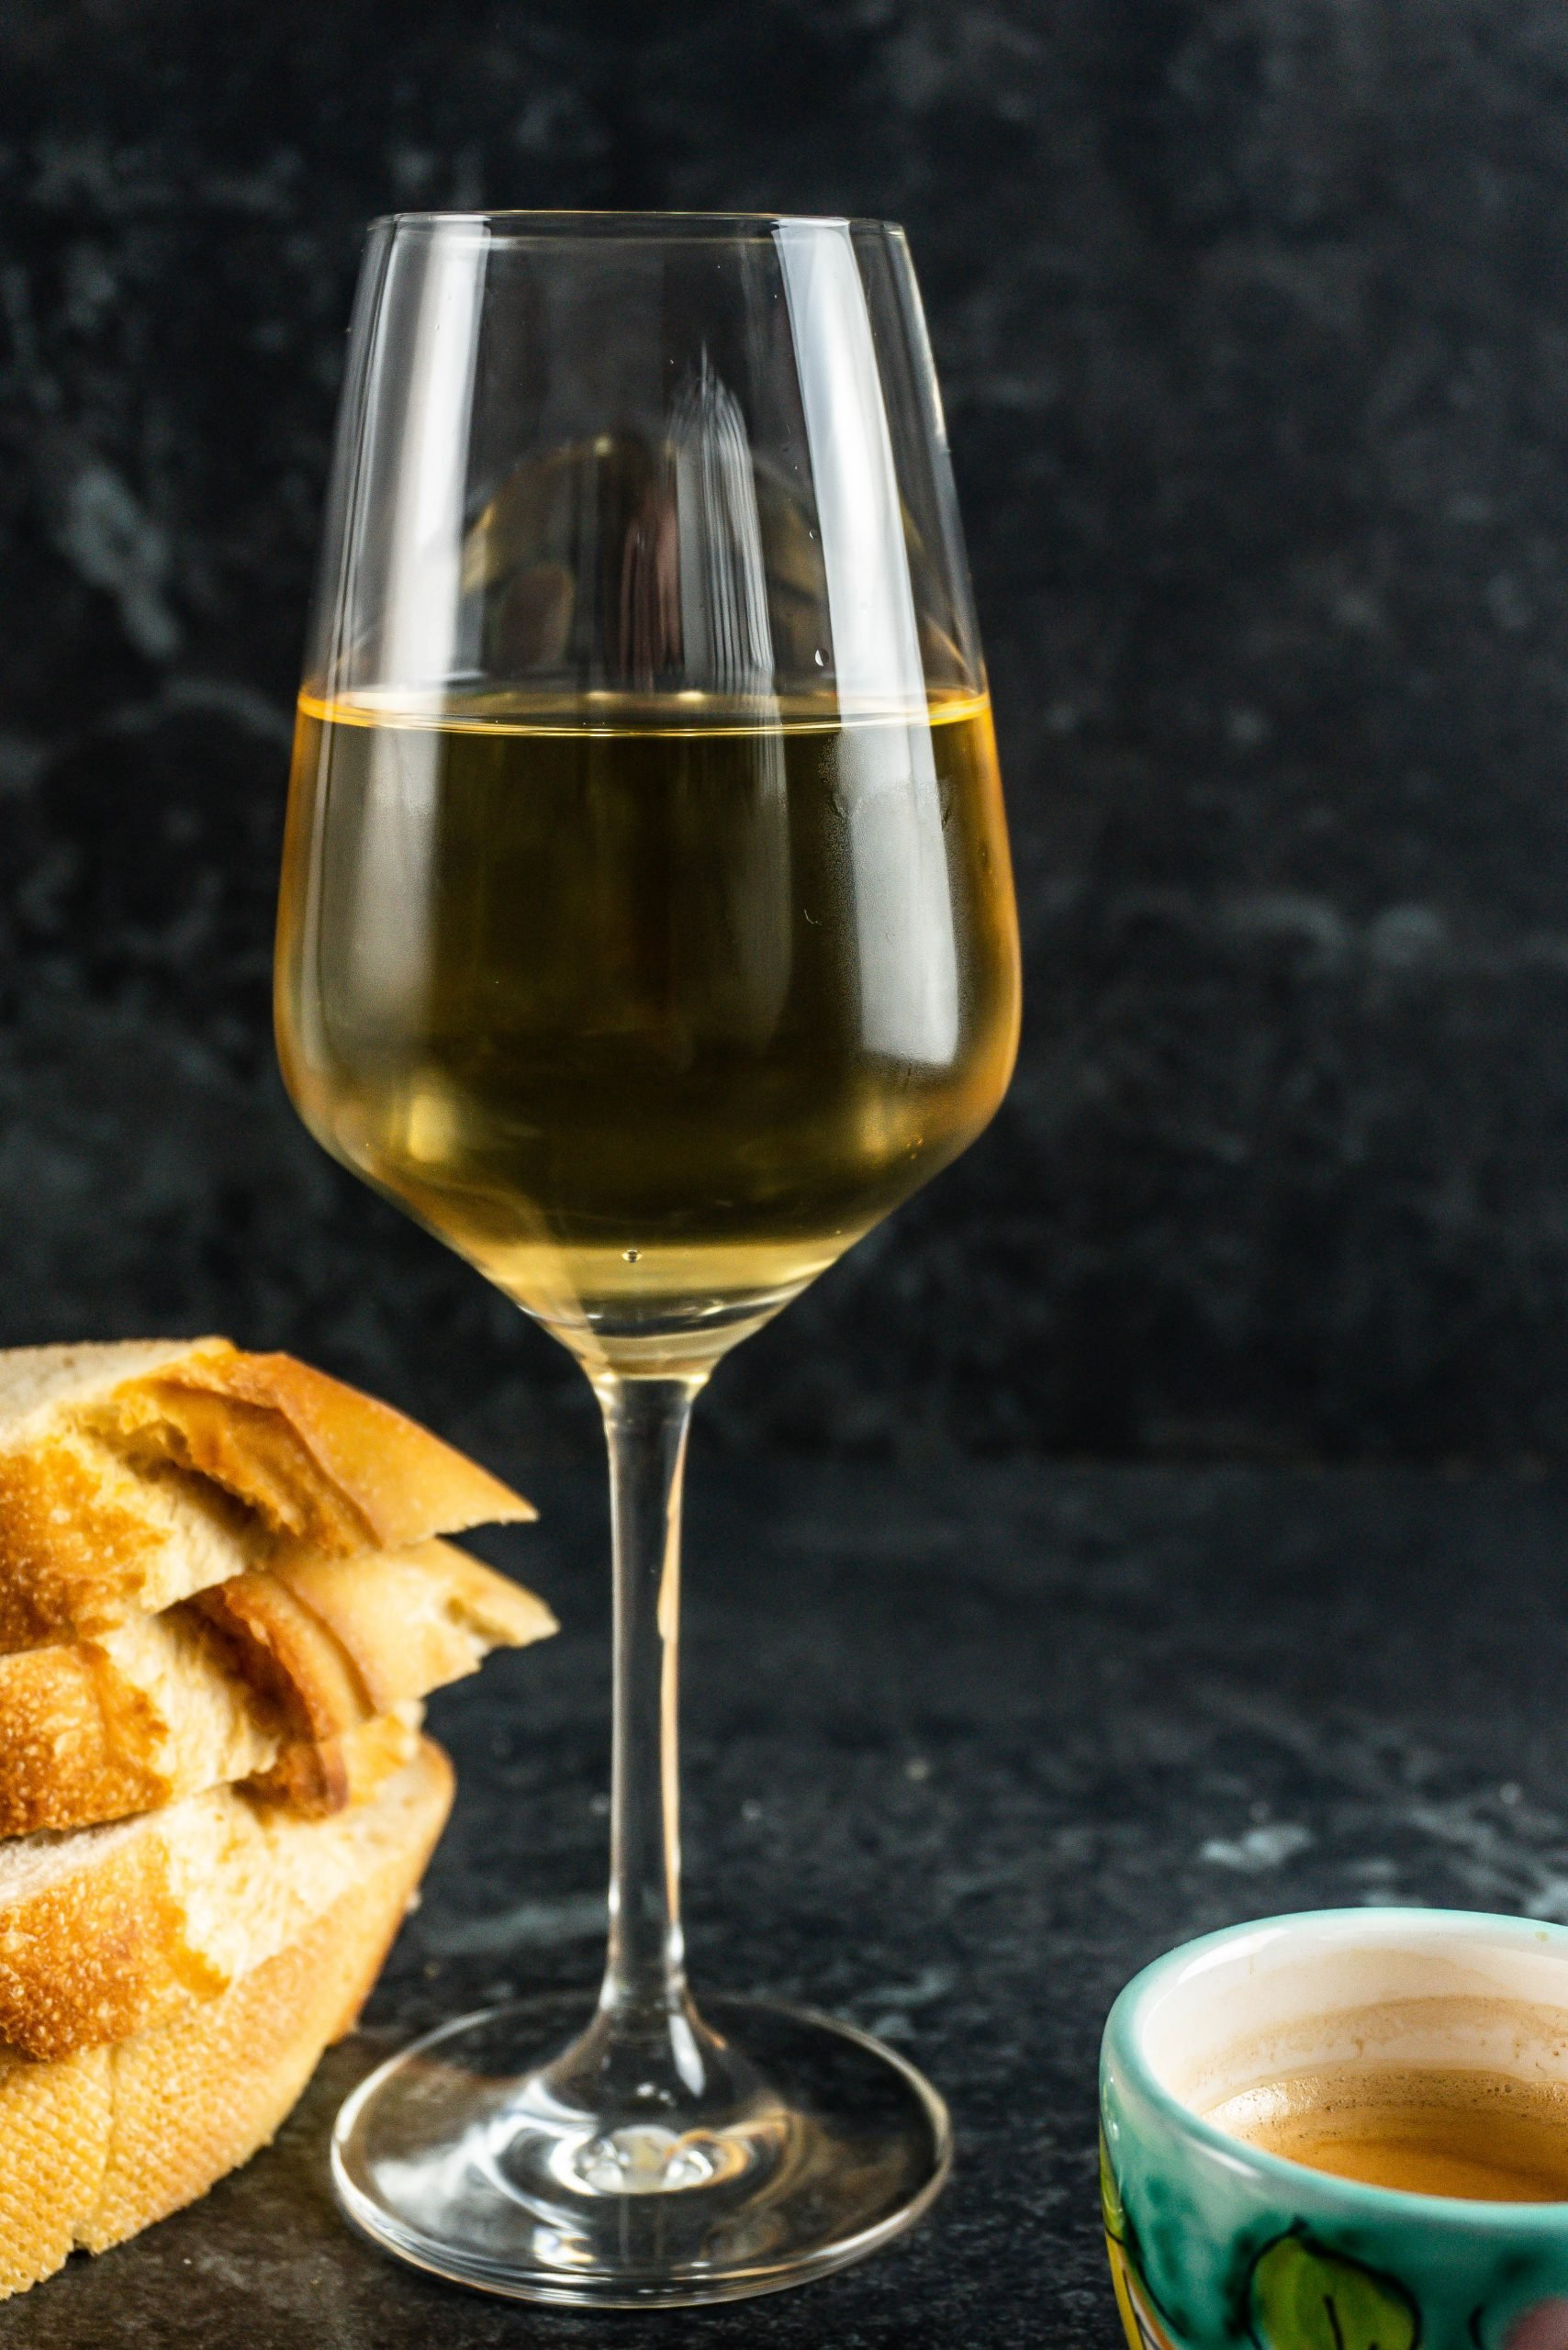 A glass of white wine on a dark background. Avoiding alcohol is one of the key components in how to combat anxiety - part 1